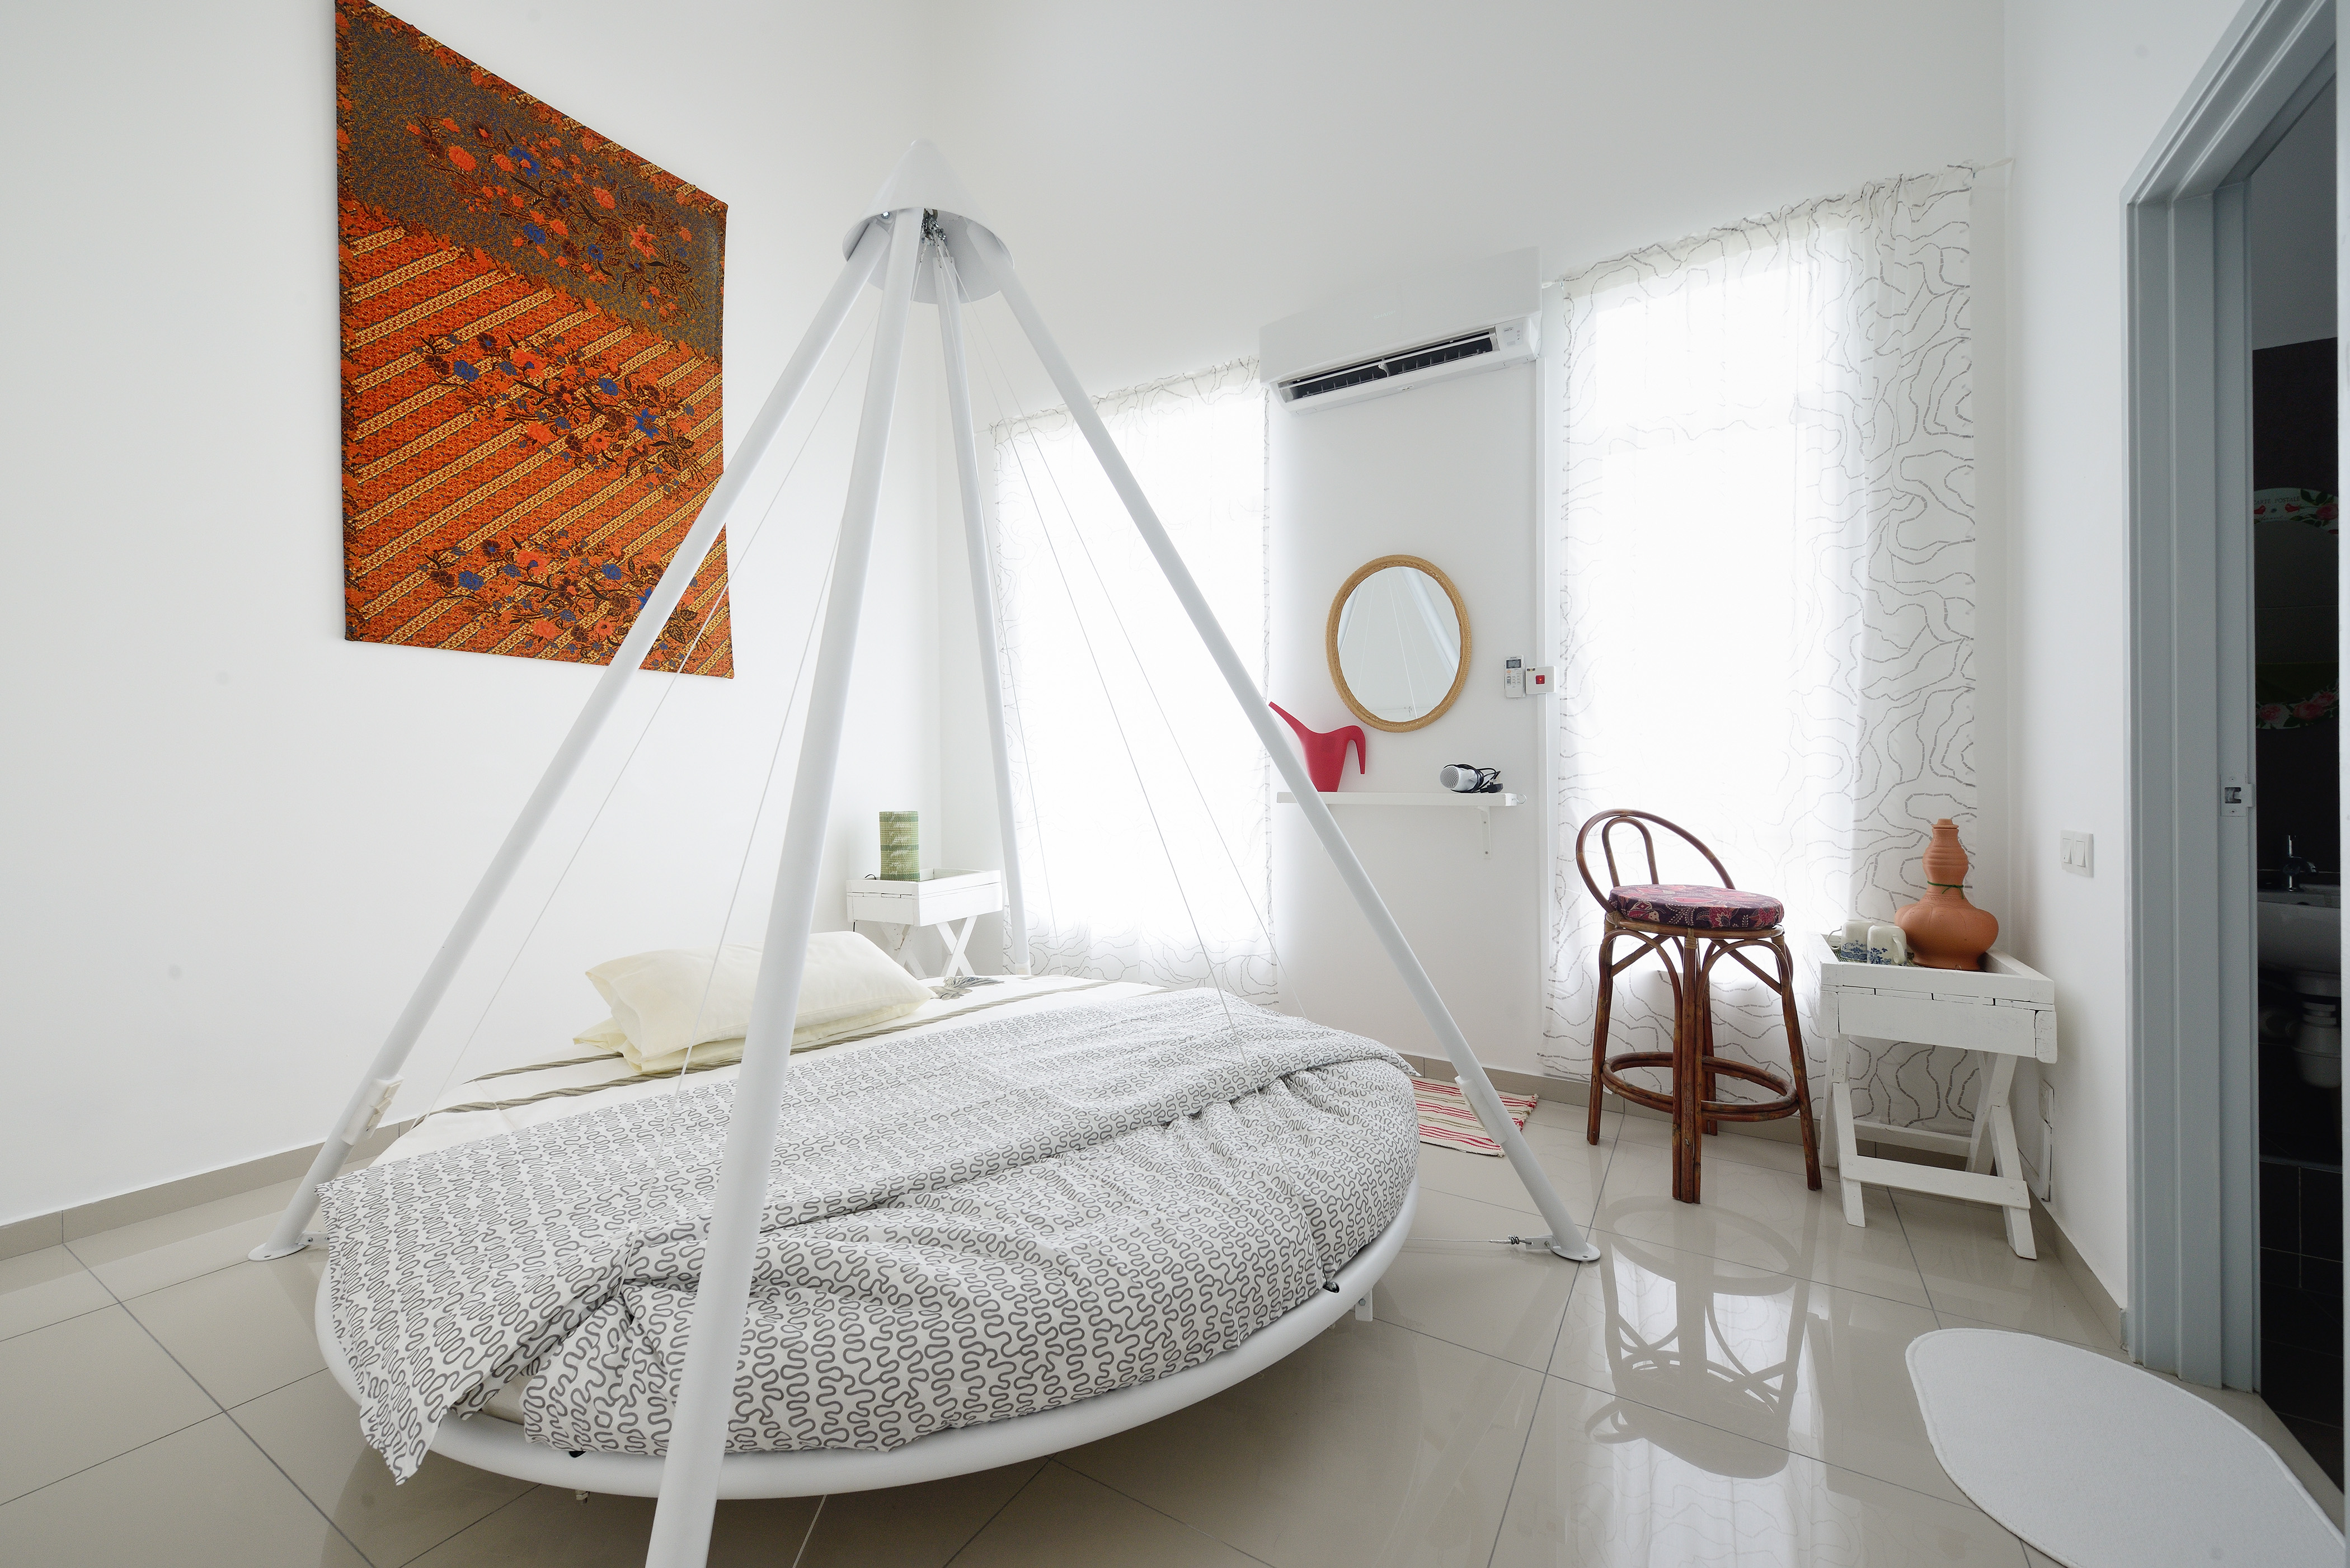 Lullaby Romantic Round Swing Bed Guest Suites For Rent In Johor Bahru Johor Malaysia